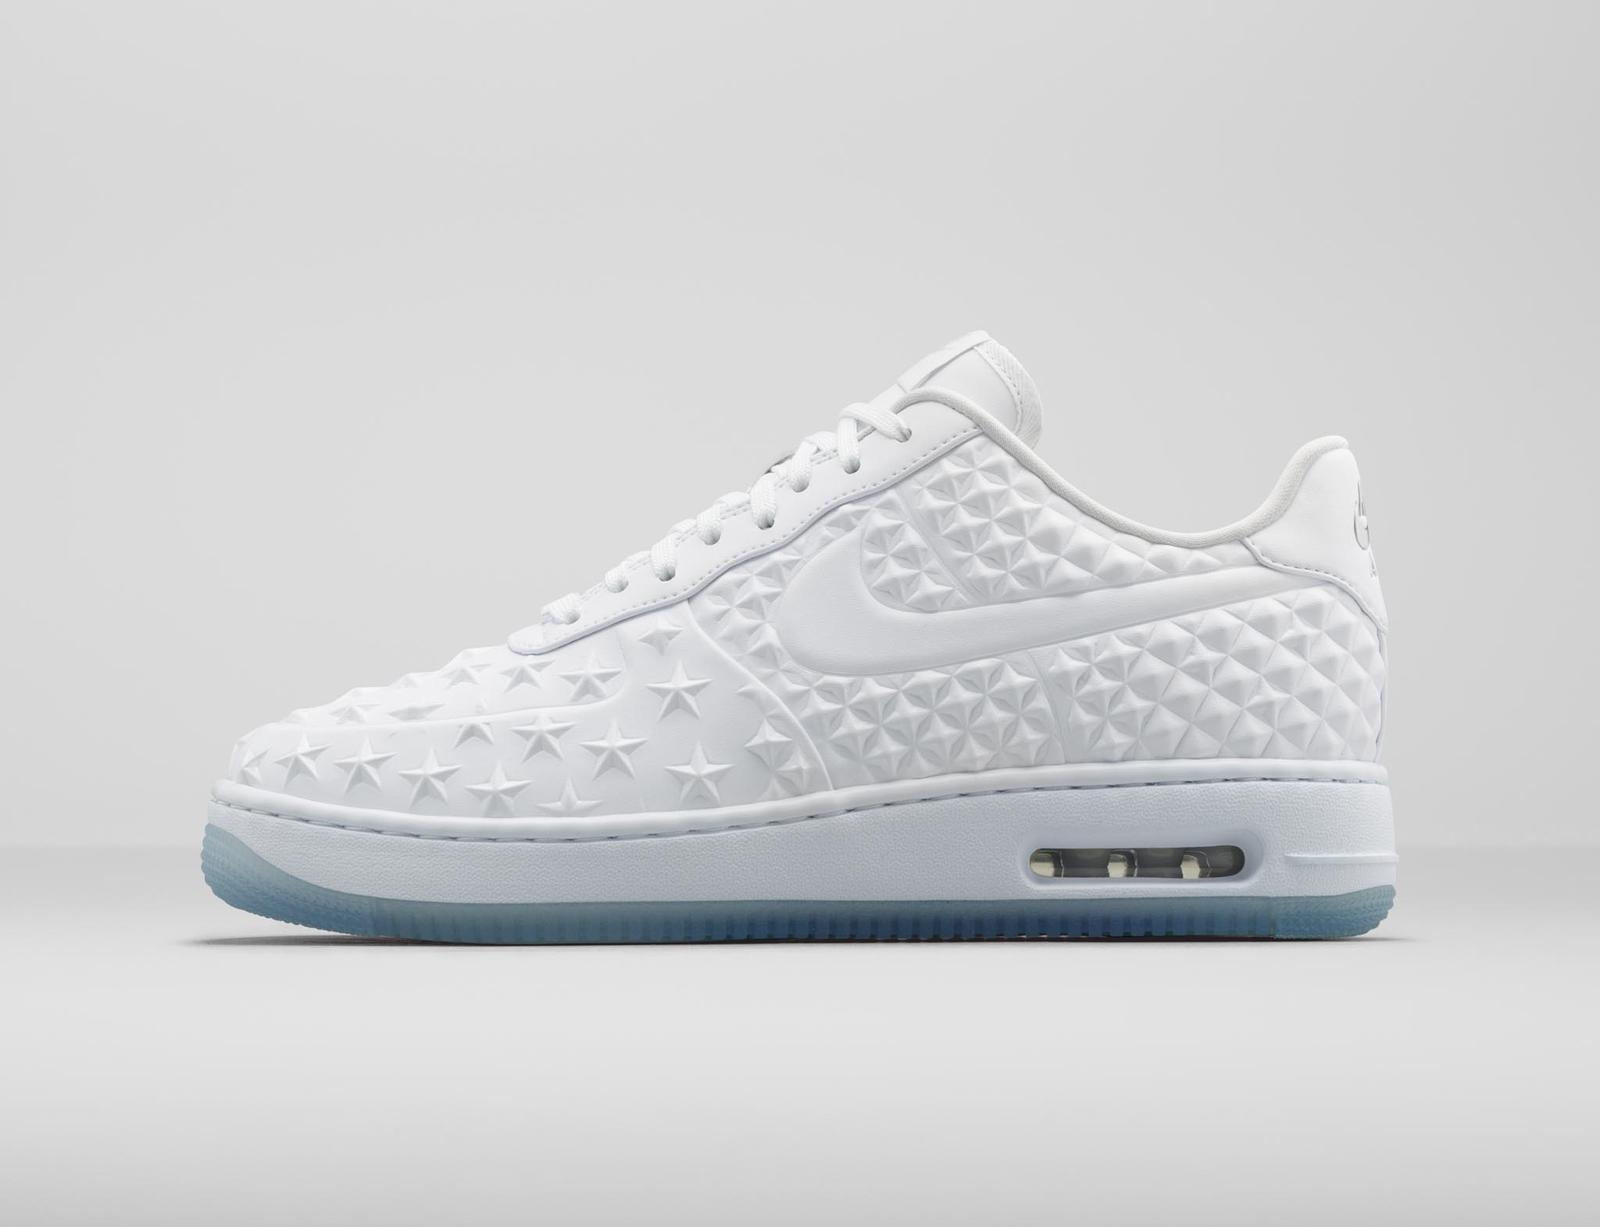 c558732d6726c Nike Sportswear All Star Game 2015  Constellation Collection ...